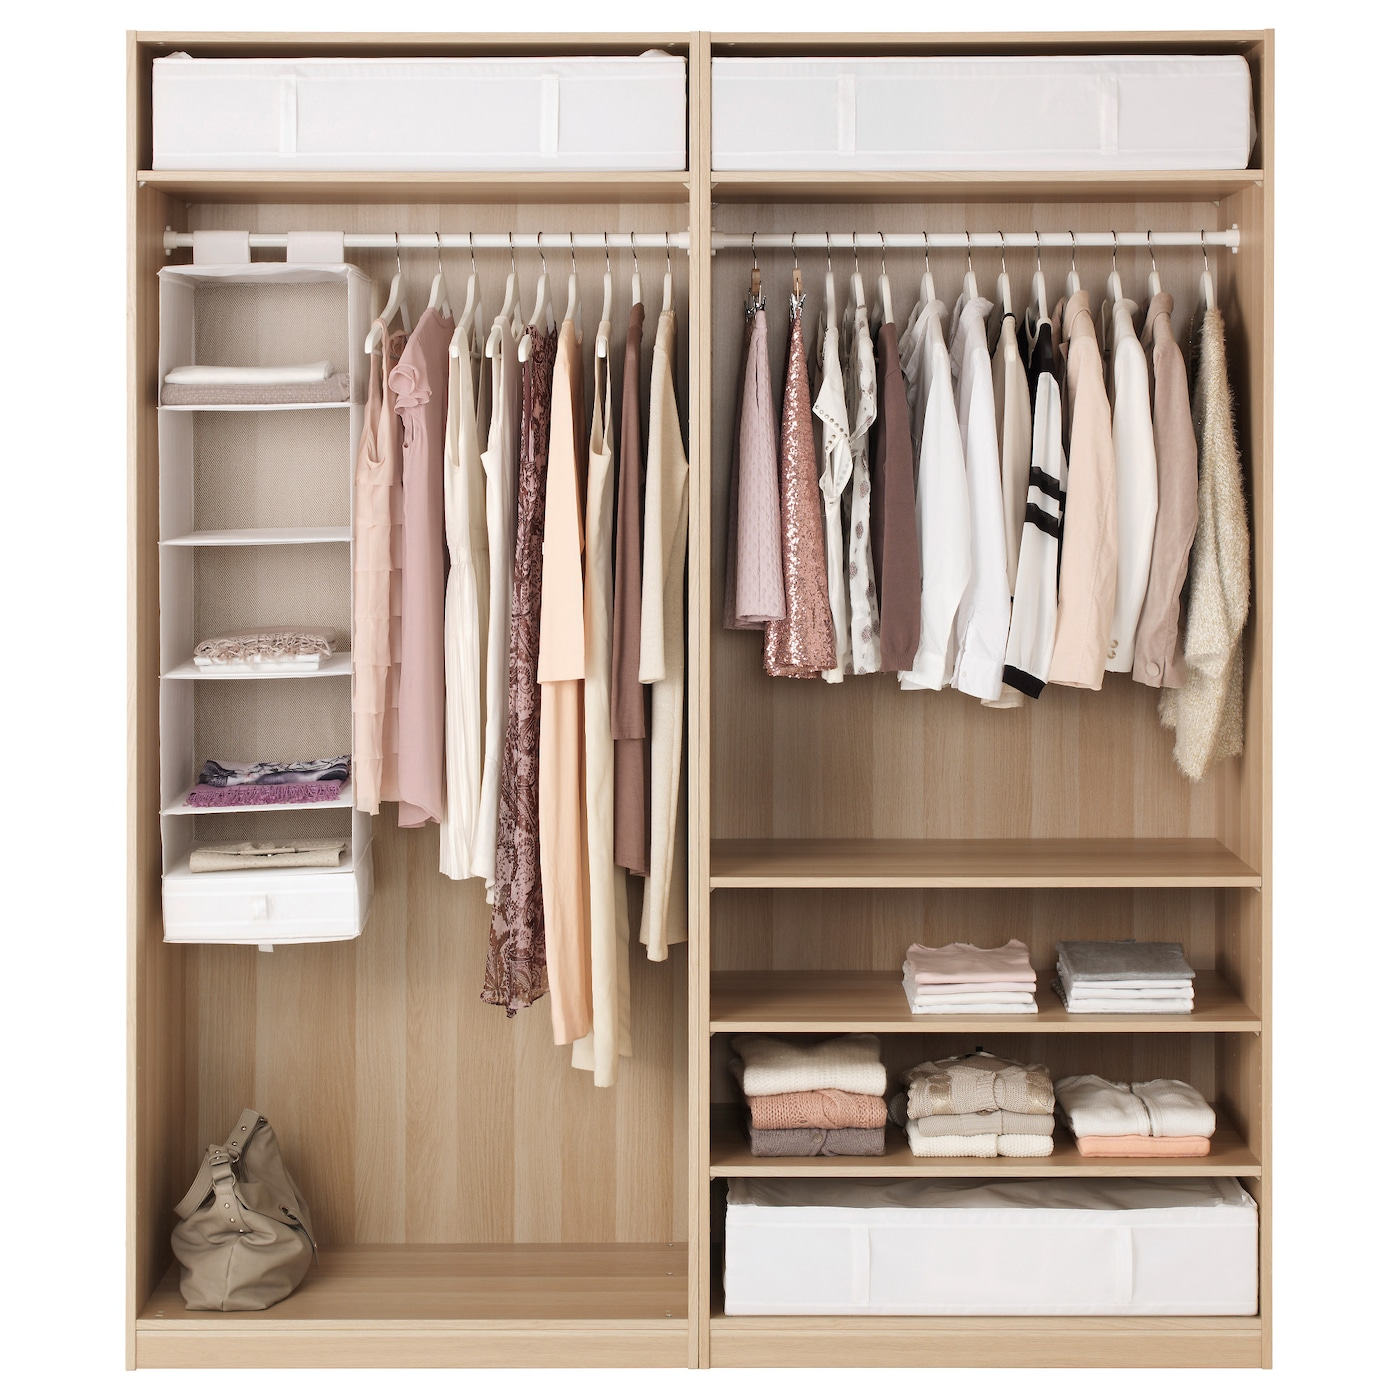 pax wardrobe white stained oak effect ilseng white stained oak veneer 200 x 66 x 236 cm ikea. Black Bedroom Furniture Sets. Home Design Ideas